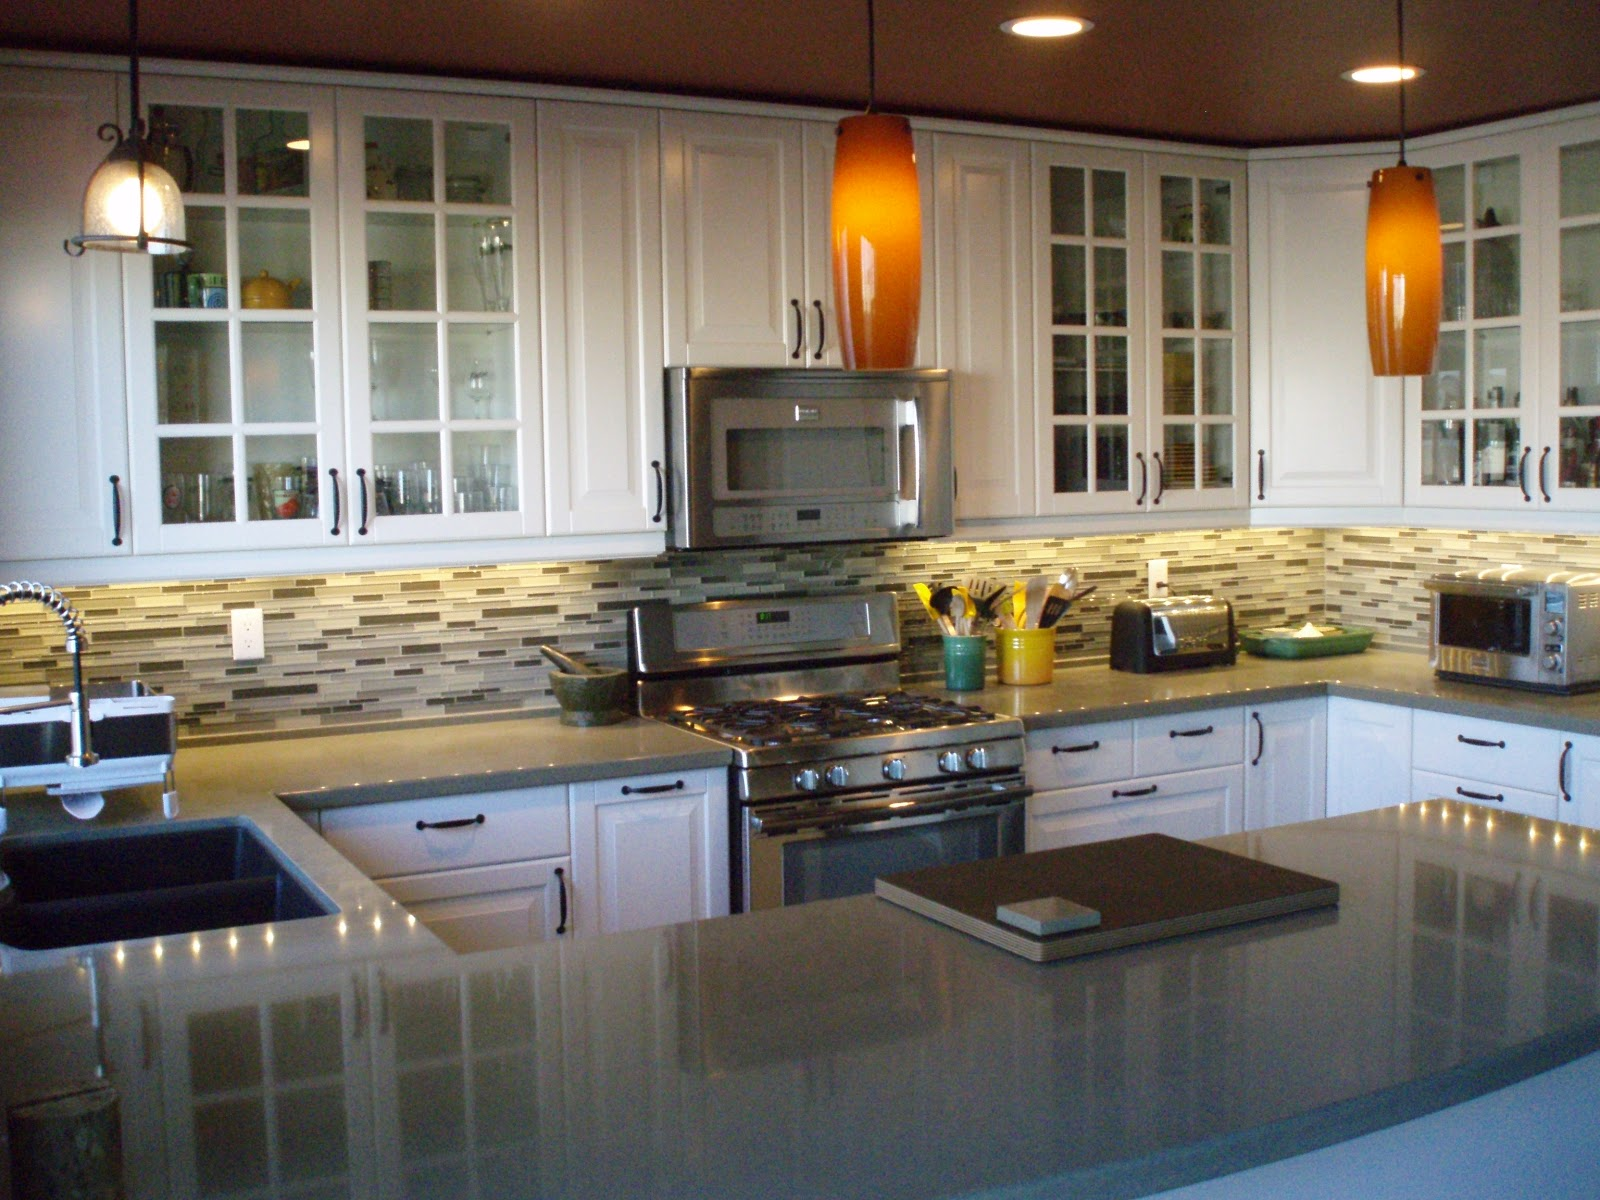 11 kitchen cabinet cost How to Save Money on an IKEA Kitchen